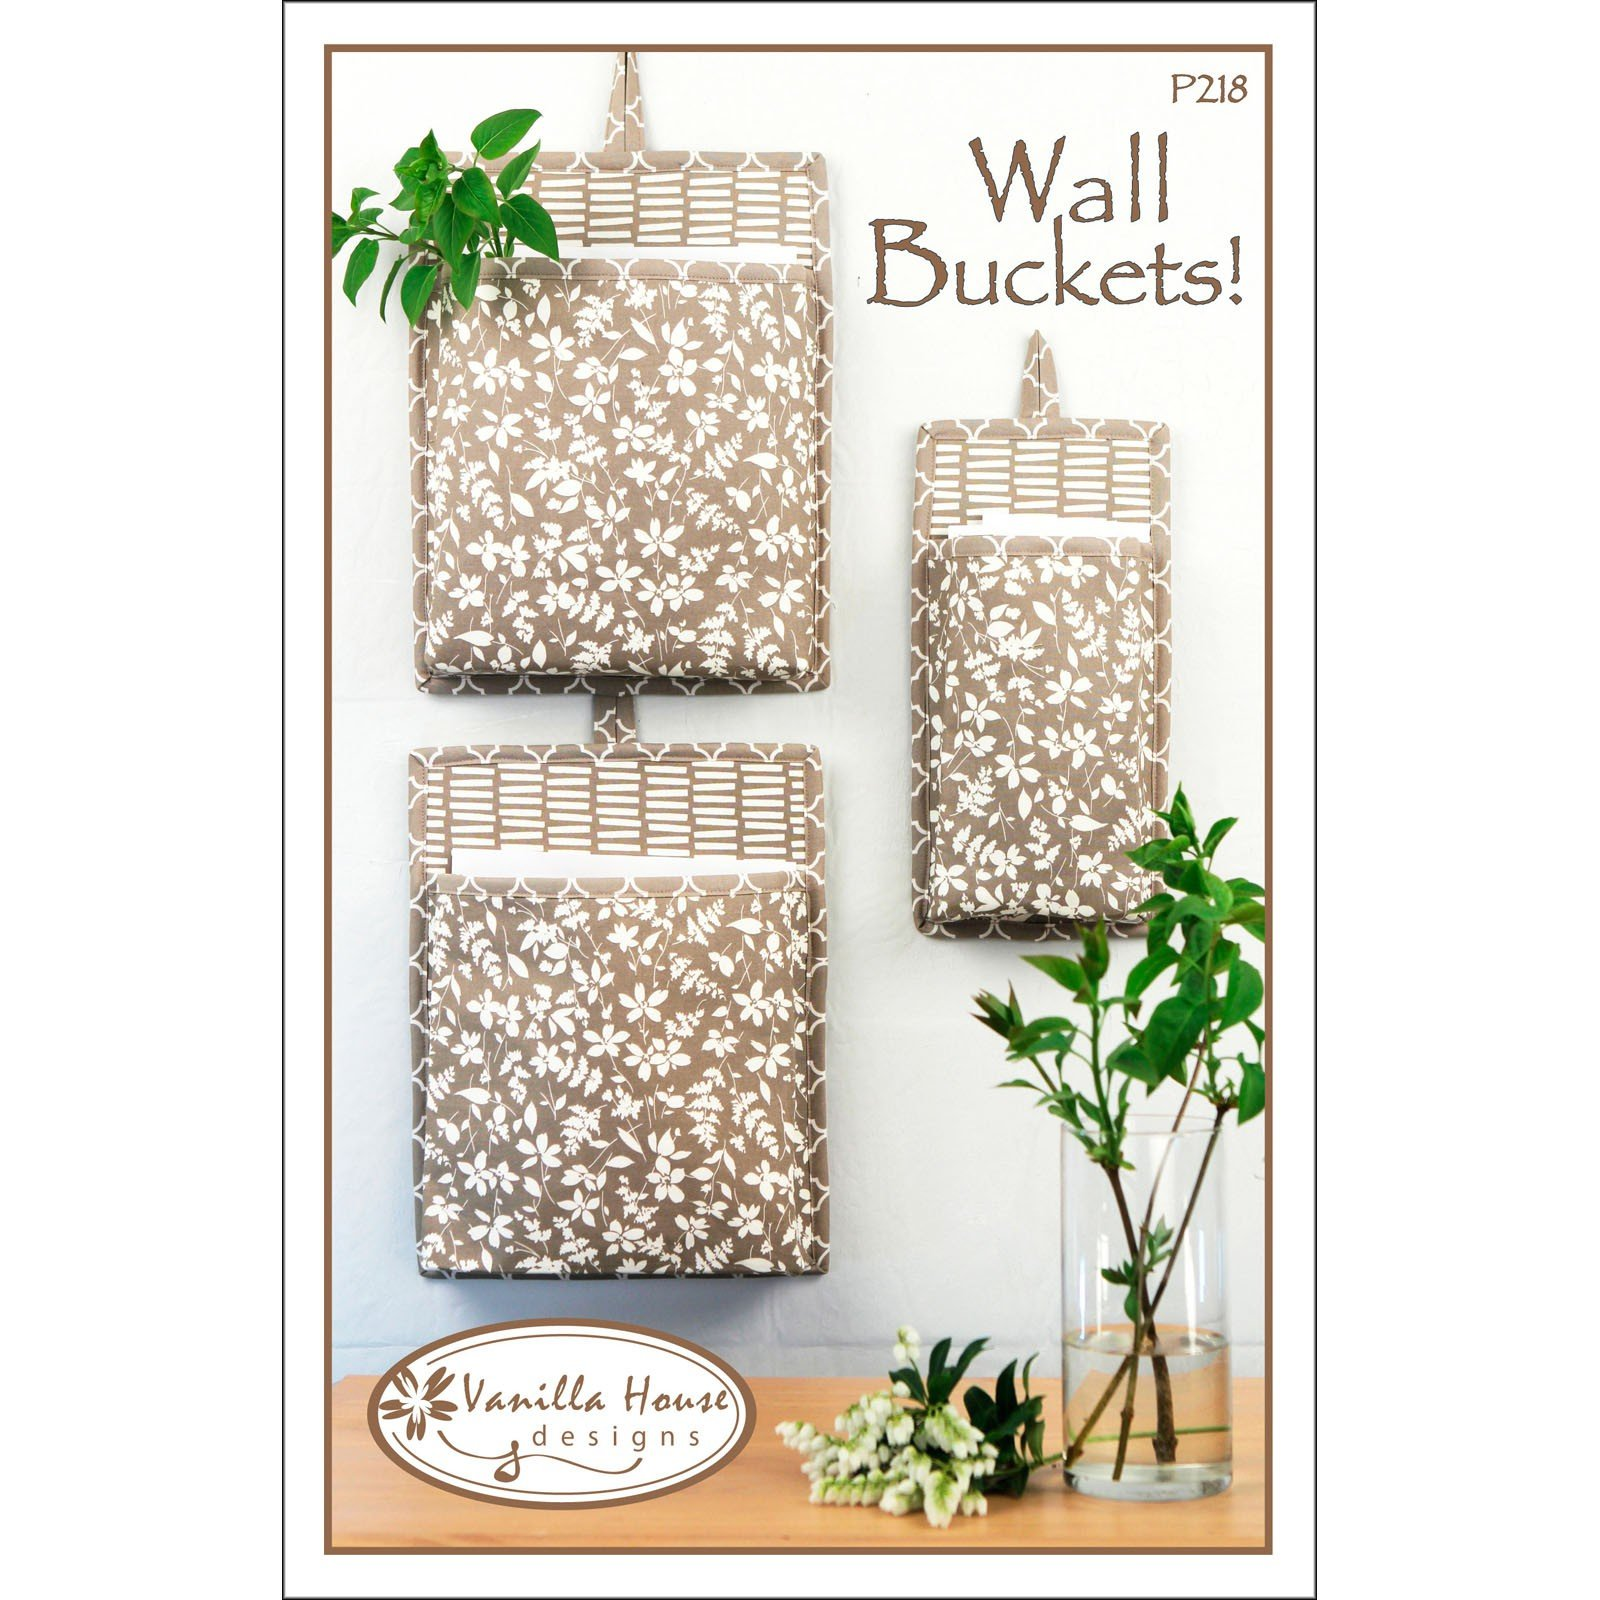 Wall Buckets! Pattern